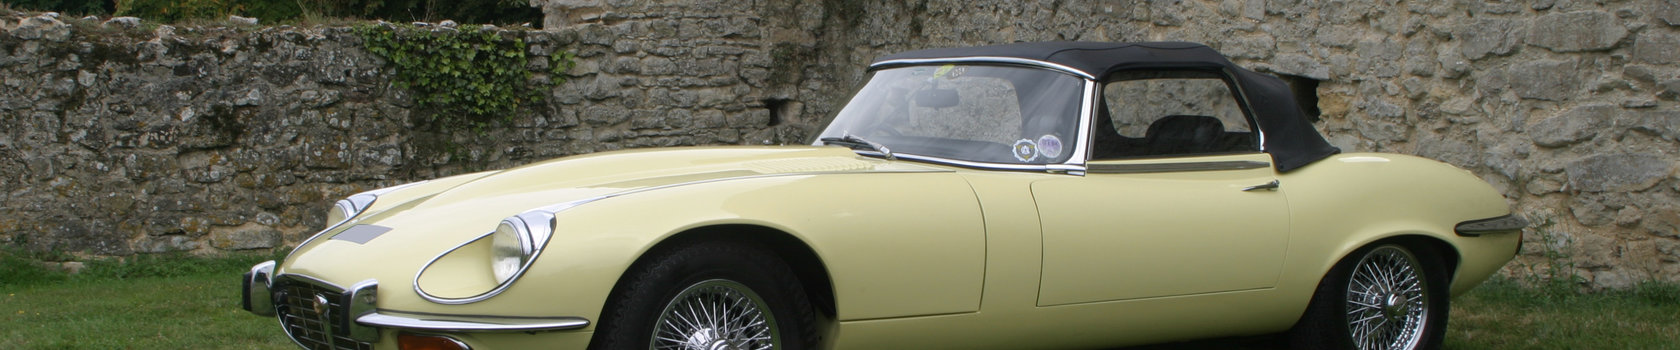 E Type Series 3 Rdster